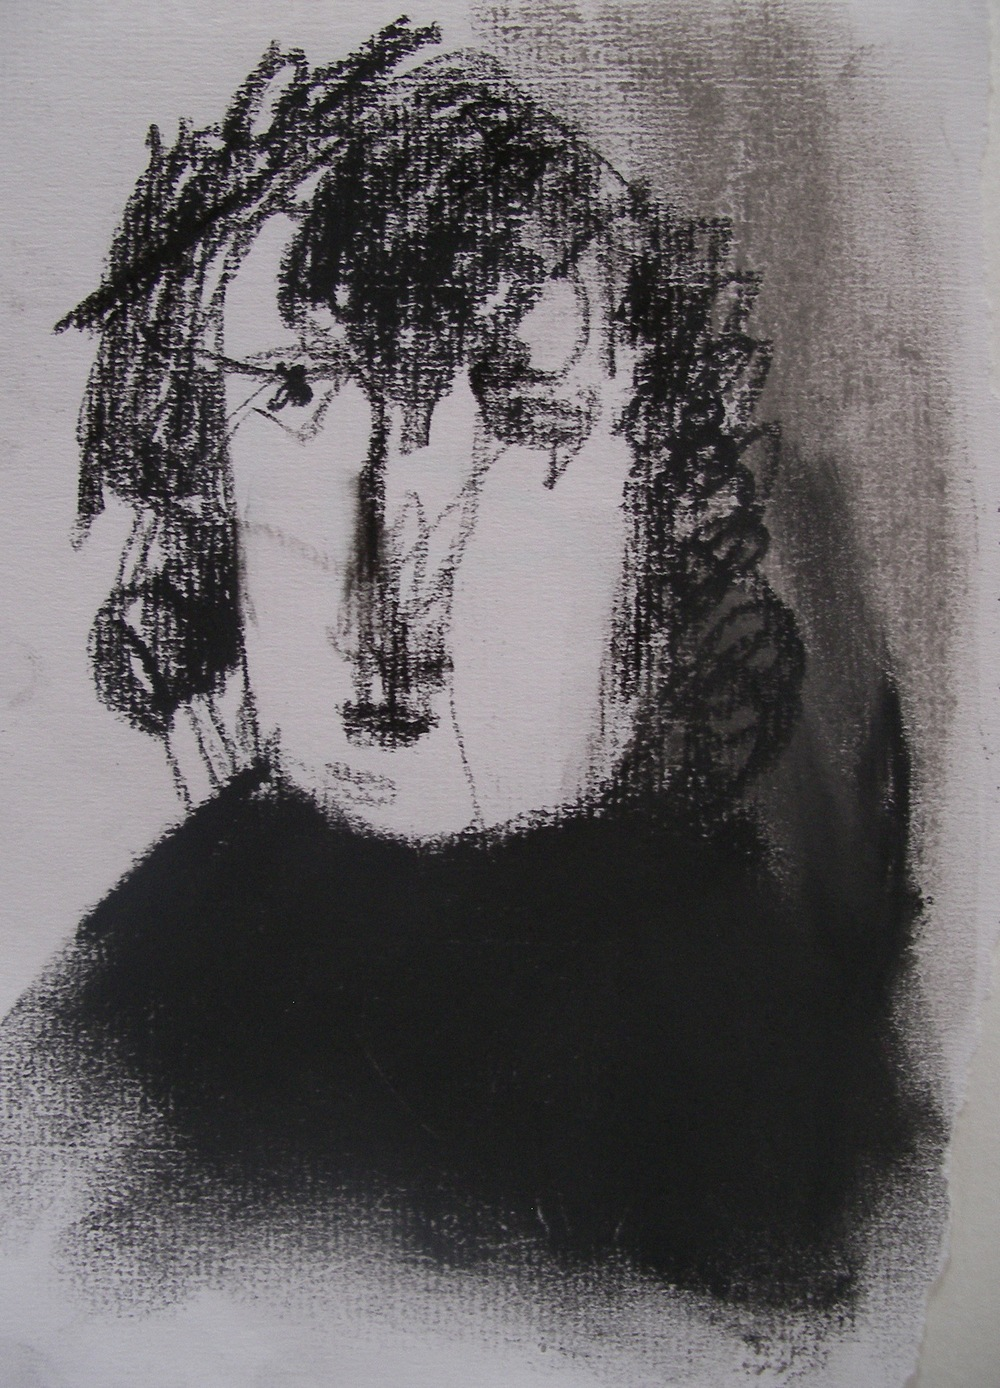 Portrait_Drawing charcoal [13x20cm] 2013 Laura Hudson-3.jpg